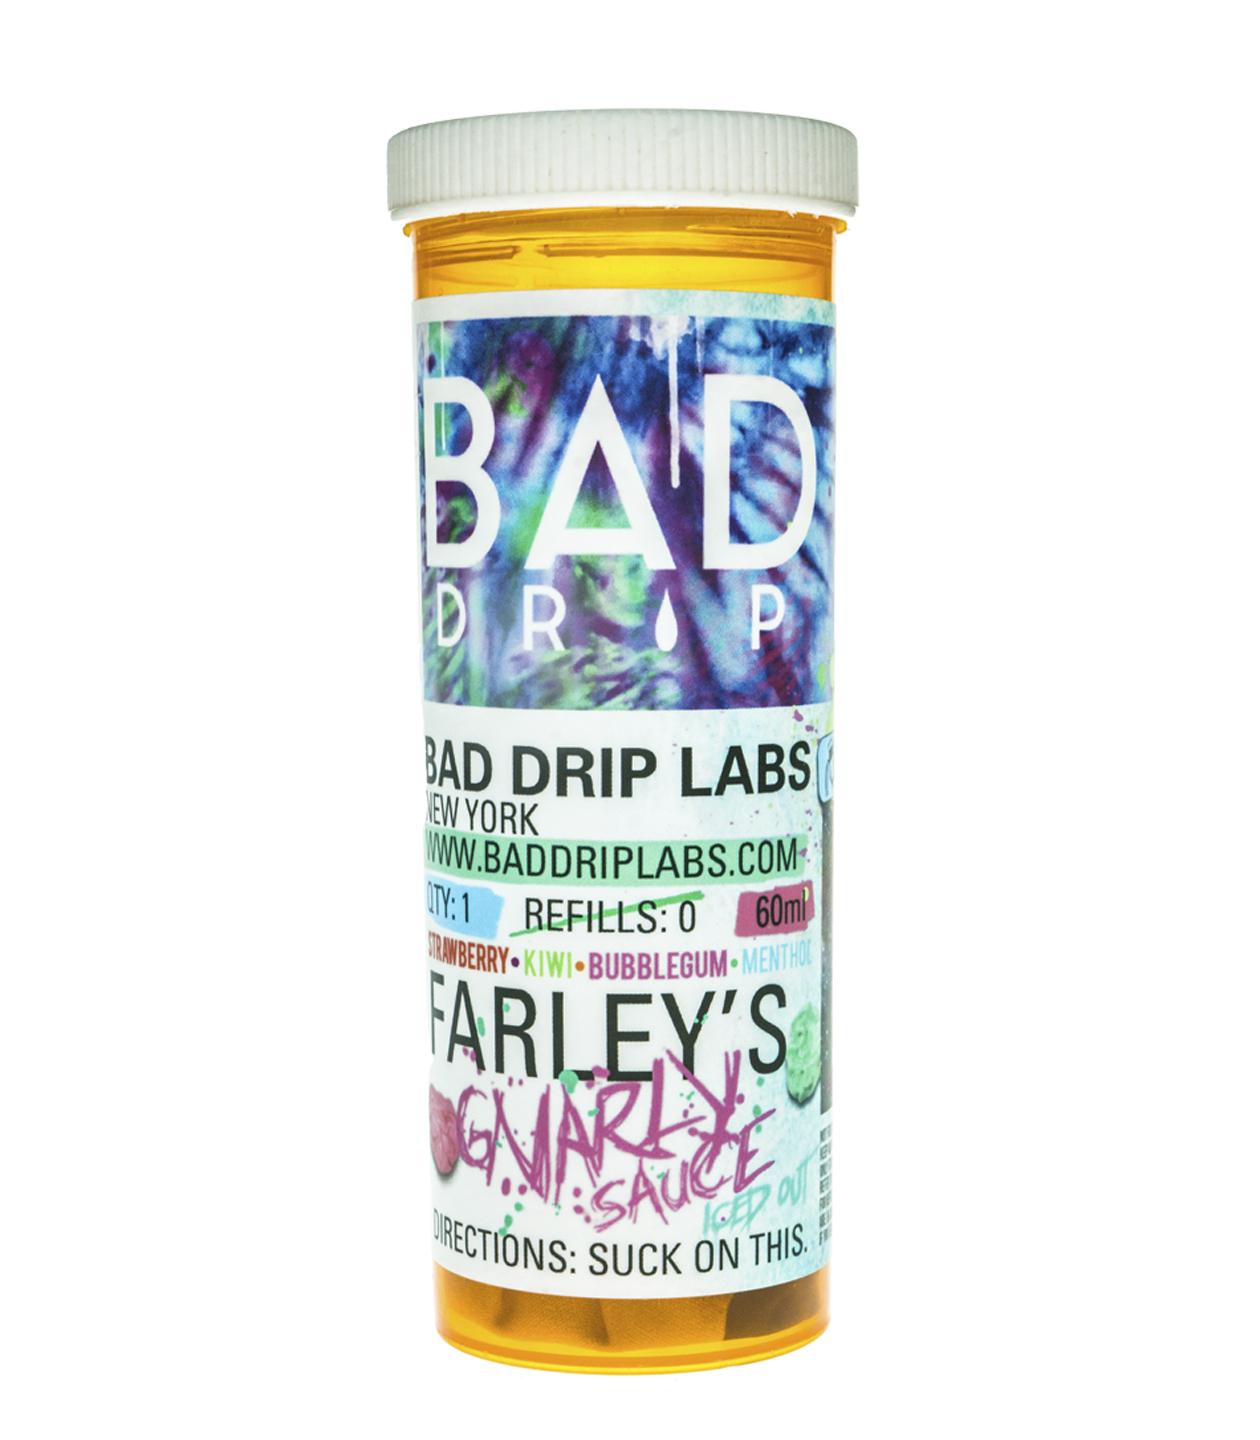 Bad Drip: Жидкость Farley's Gnarly Sauce Iced Out фото #1